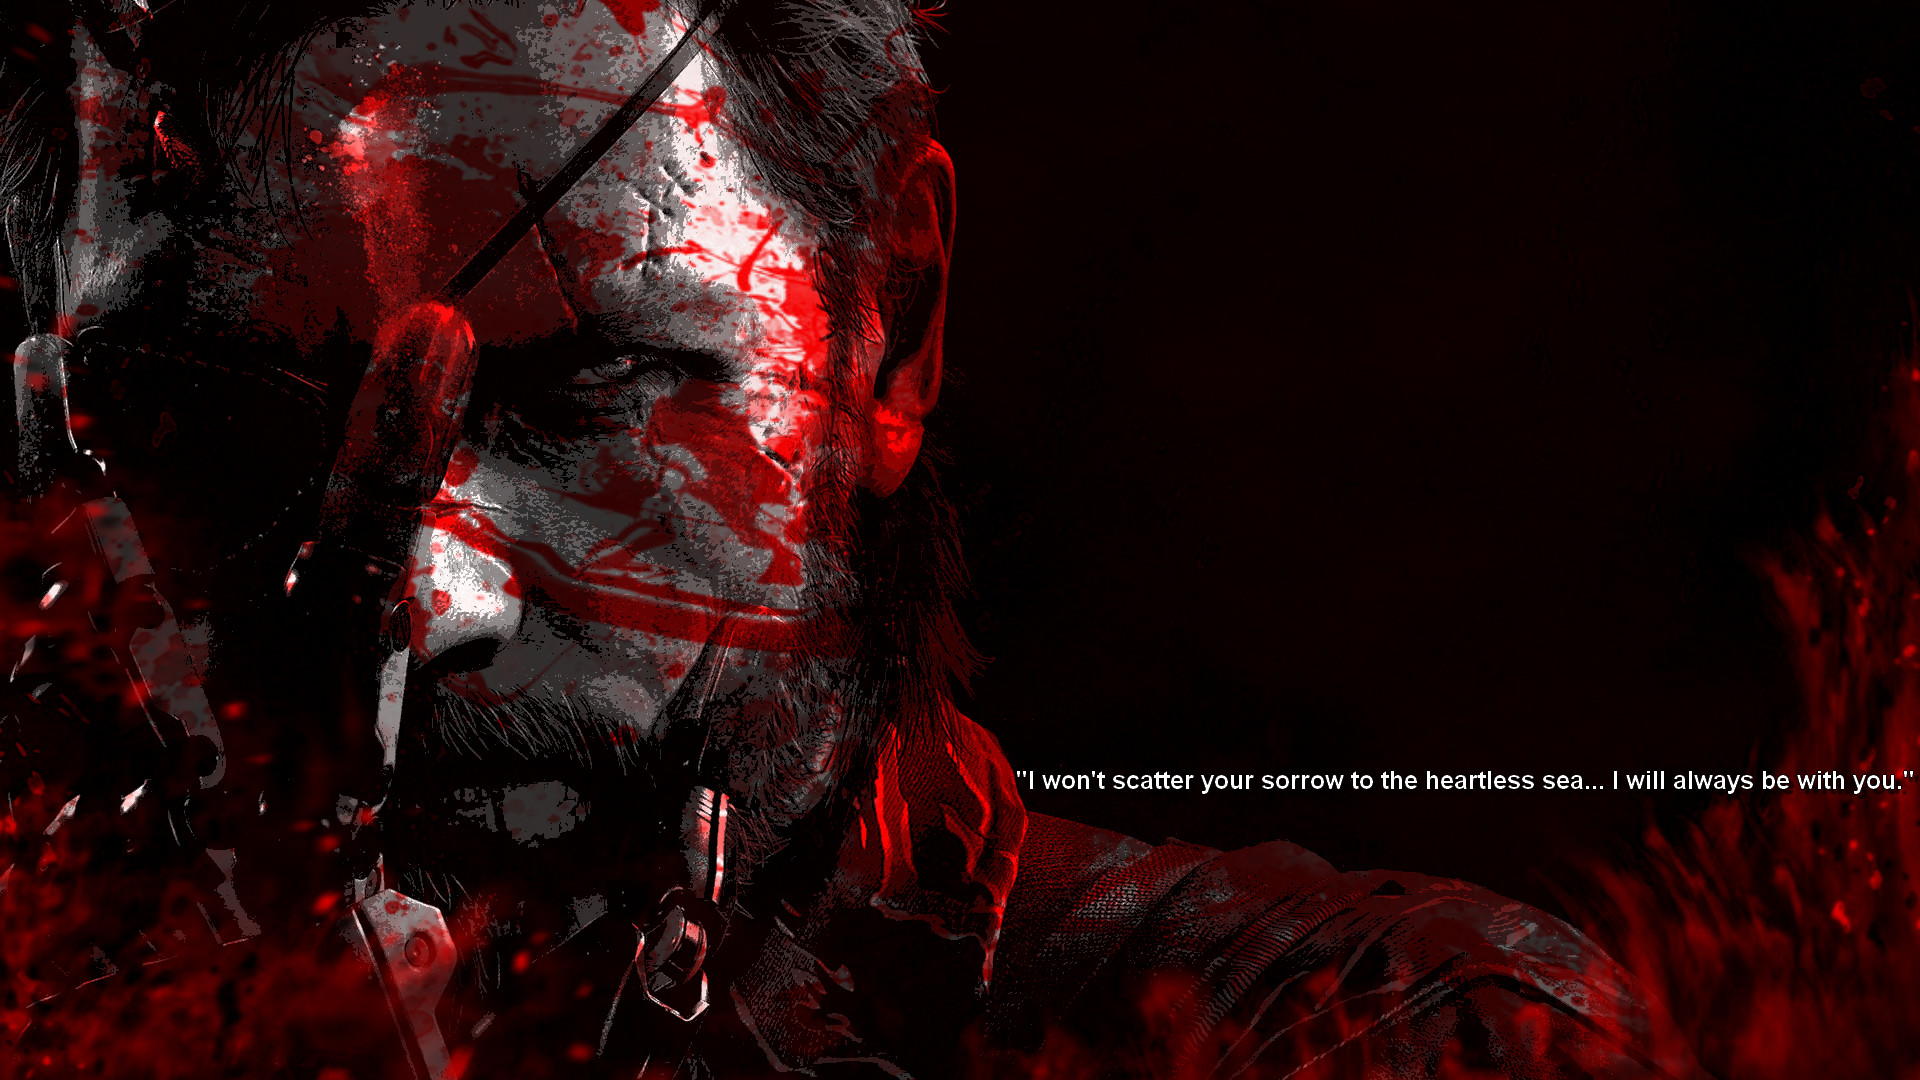 Mgs5 Phantom Pain Wallpapers (91+ Images